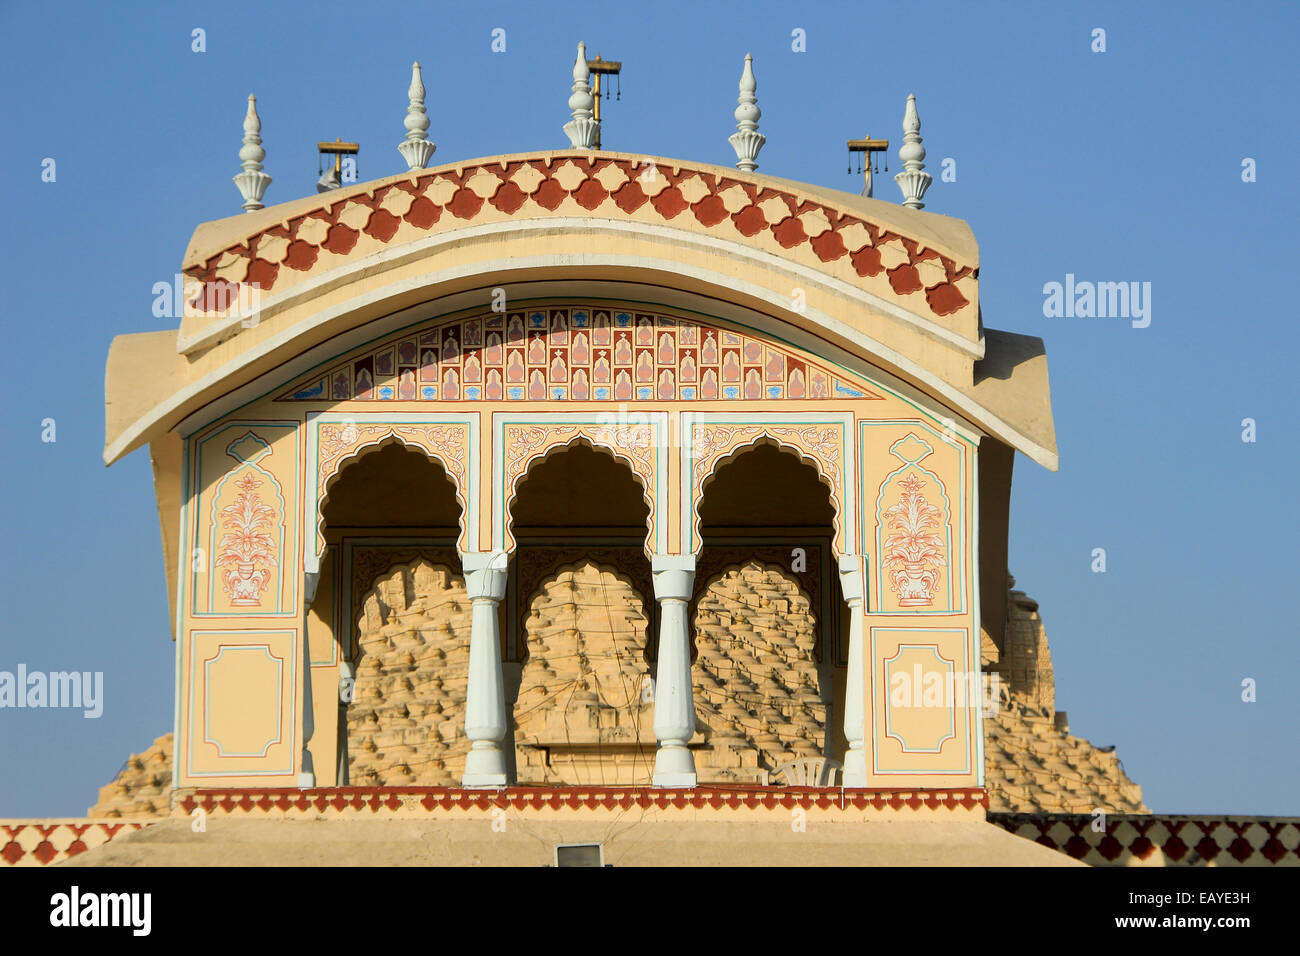 Upper portion of ISKCON Temple at Ahmedabad, Gujarath, India, Asia Stock Photo